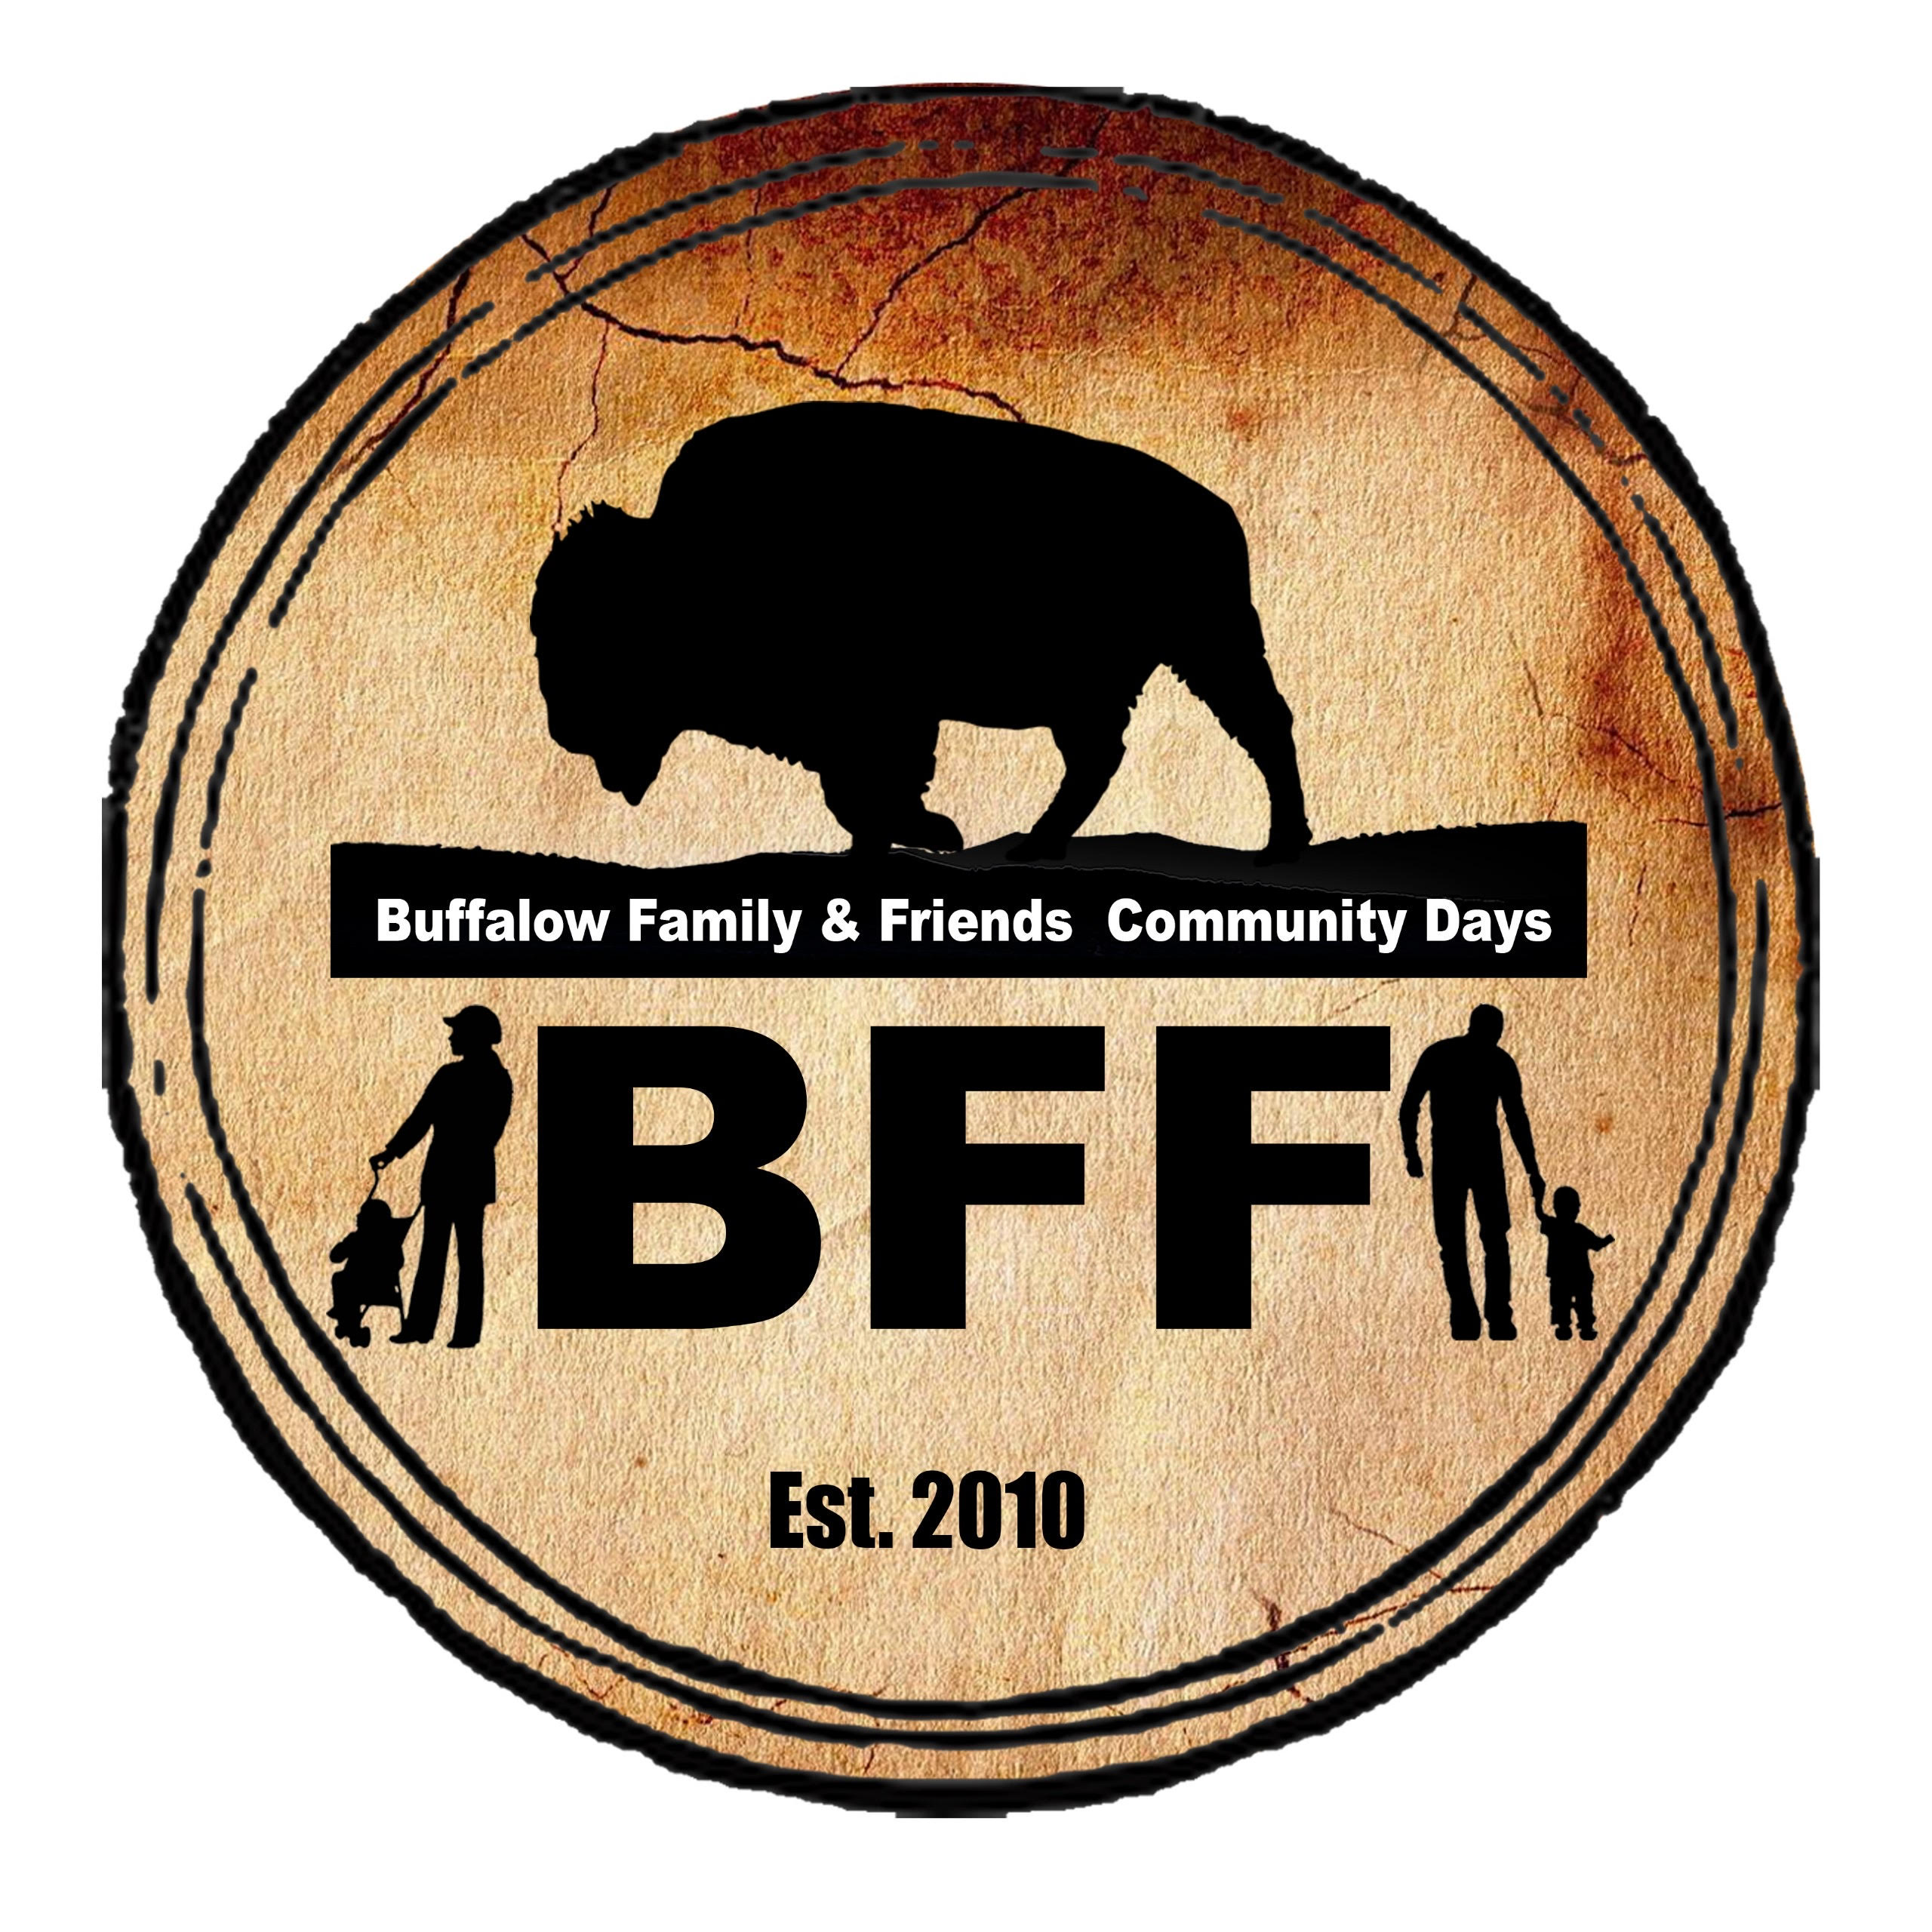 Buffalow Family and Friends Community Days